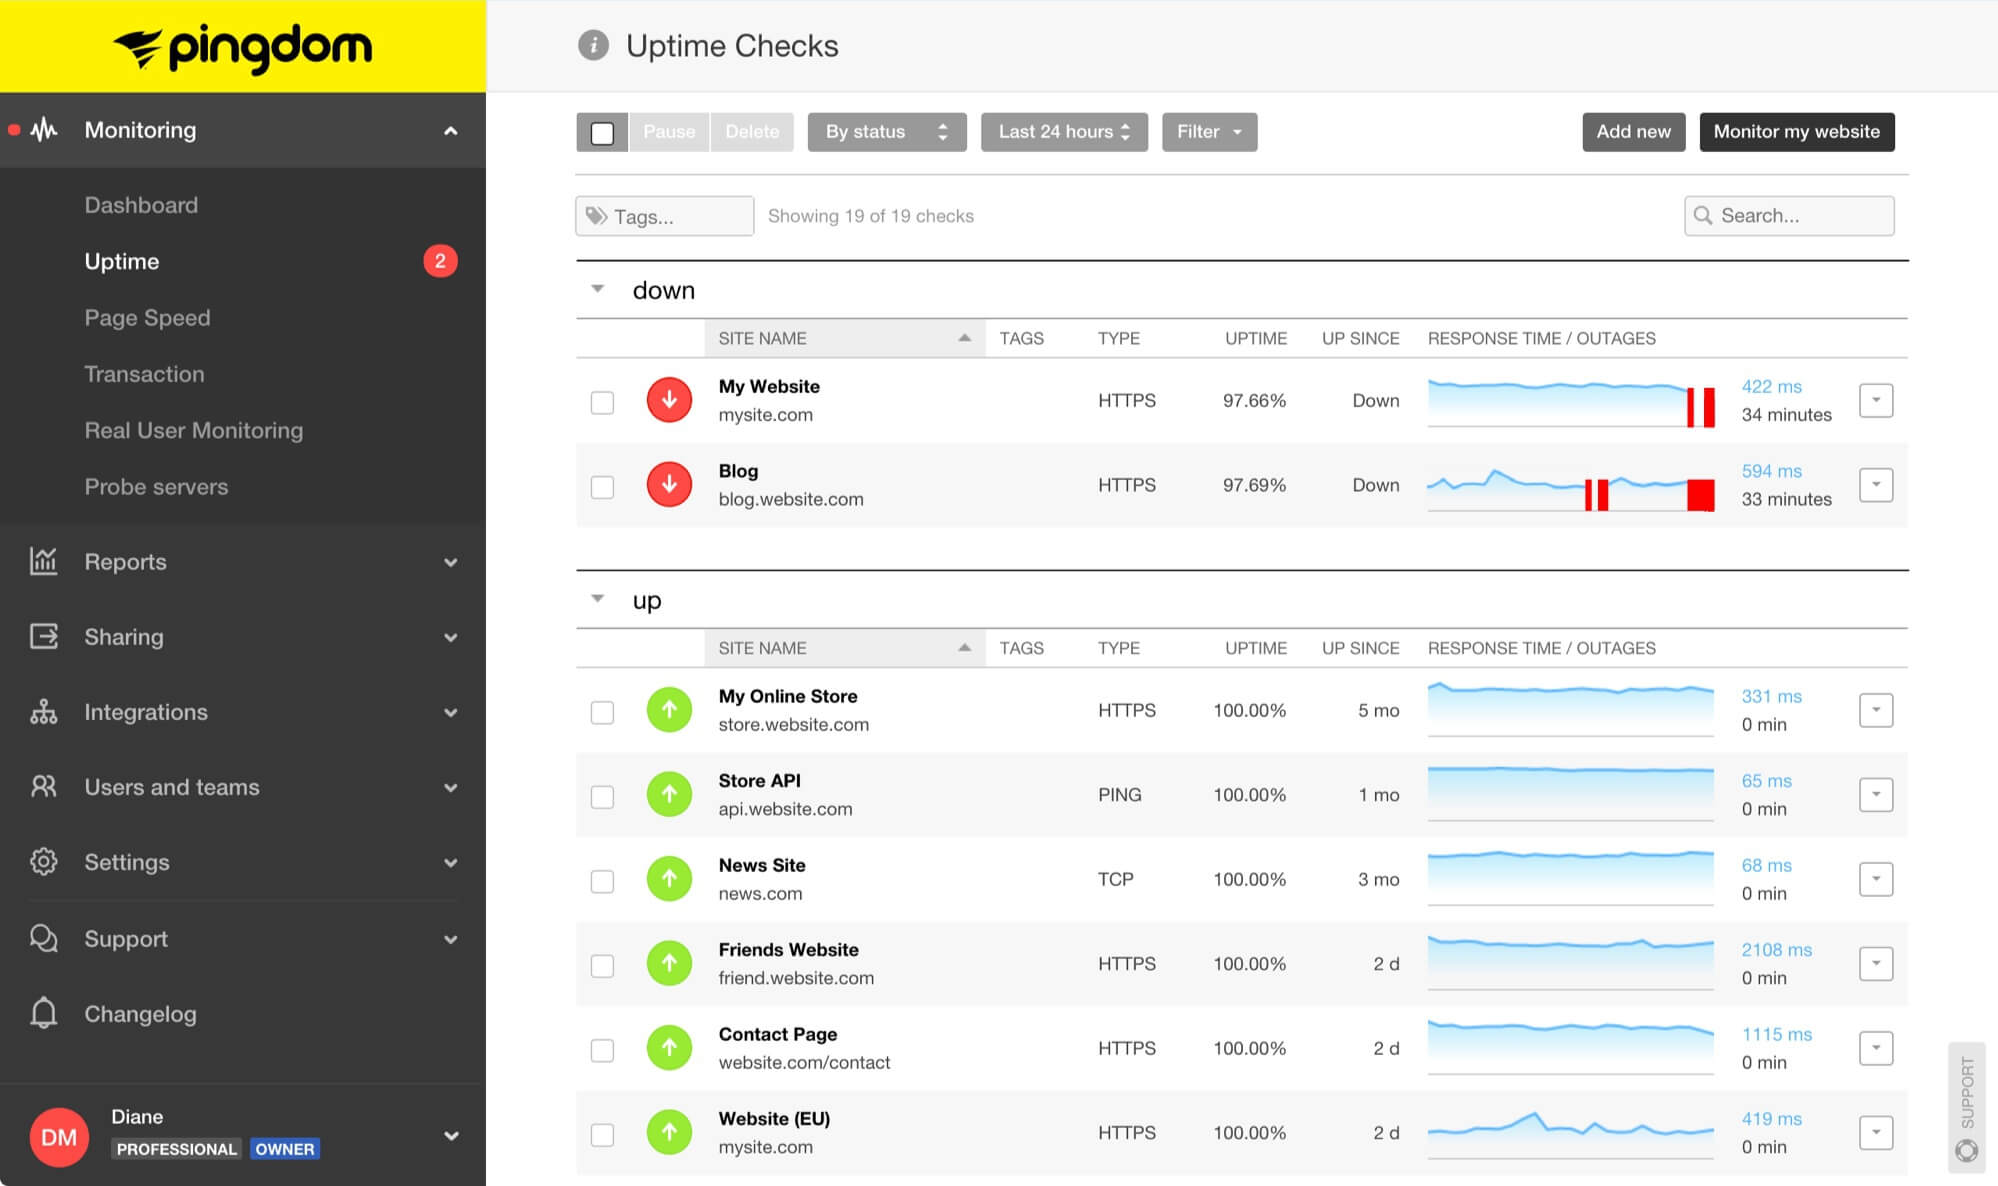 Performance monitoring tools like Pingdom help you discover performance problems